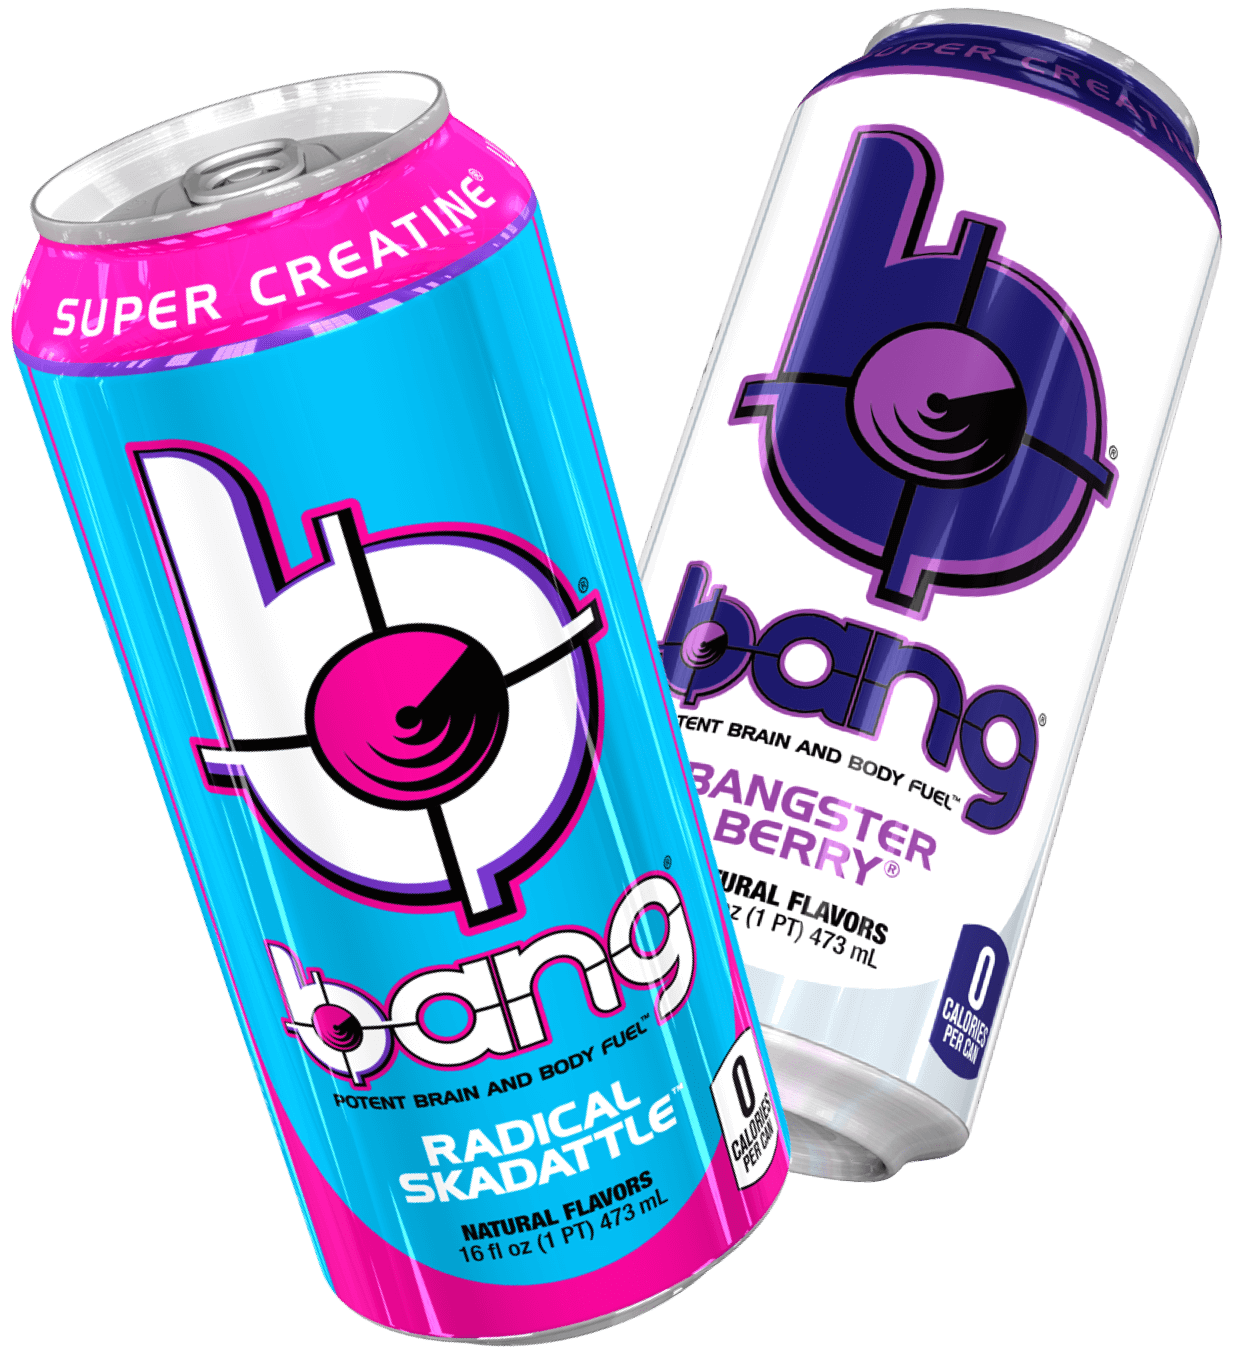 Bang Energy can image. Radical Skadattle and Bangster Berry flavors